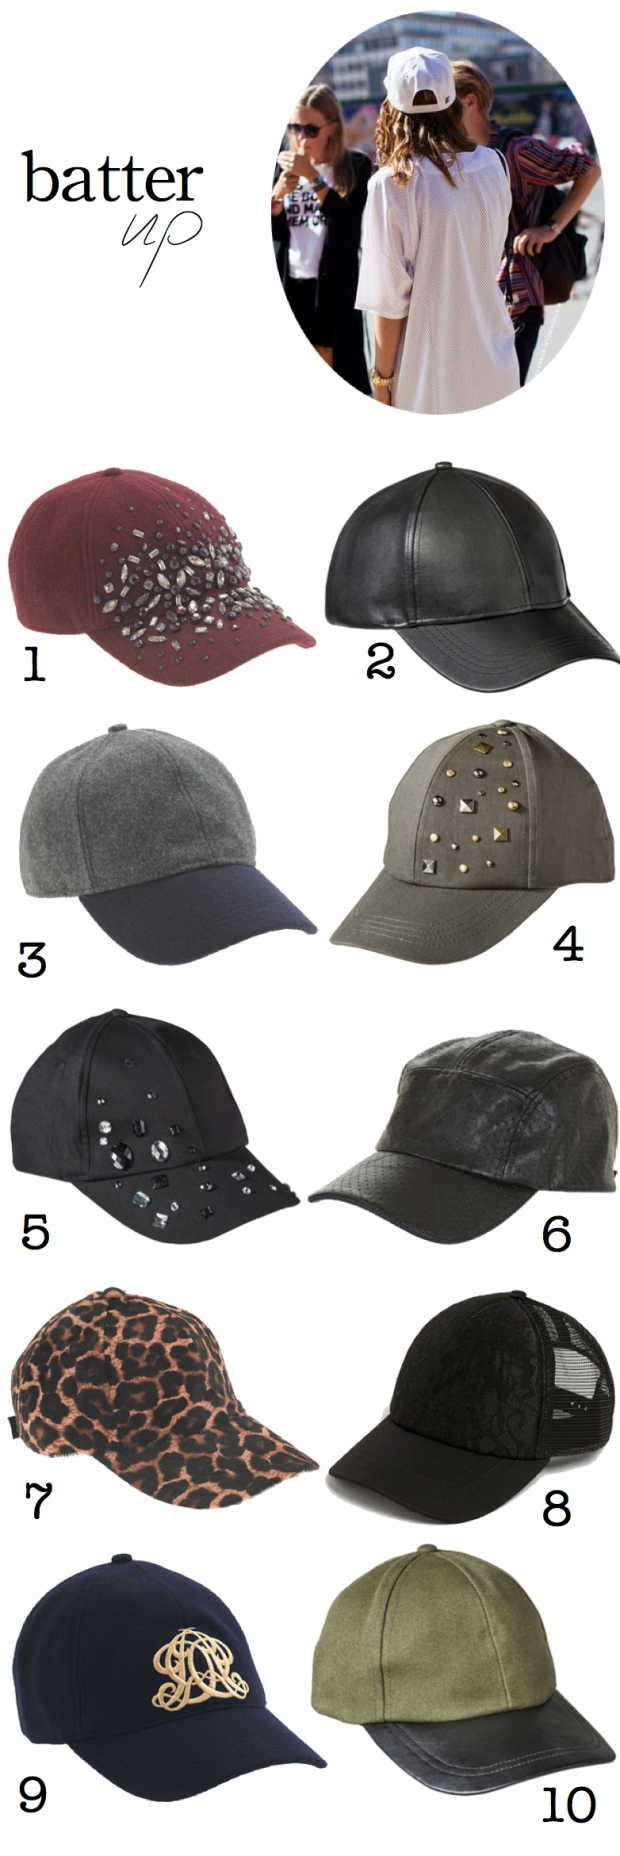 Batter Up - Baseball Cap Trend | TheSubtleStatement.com